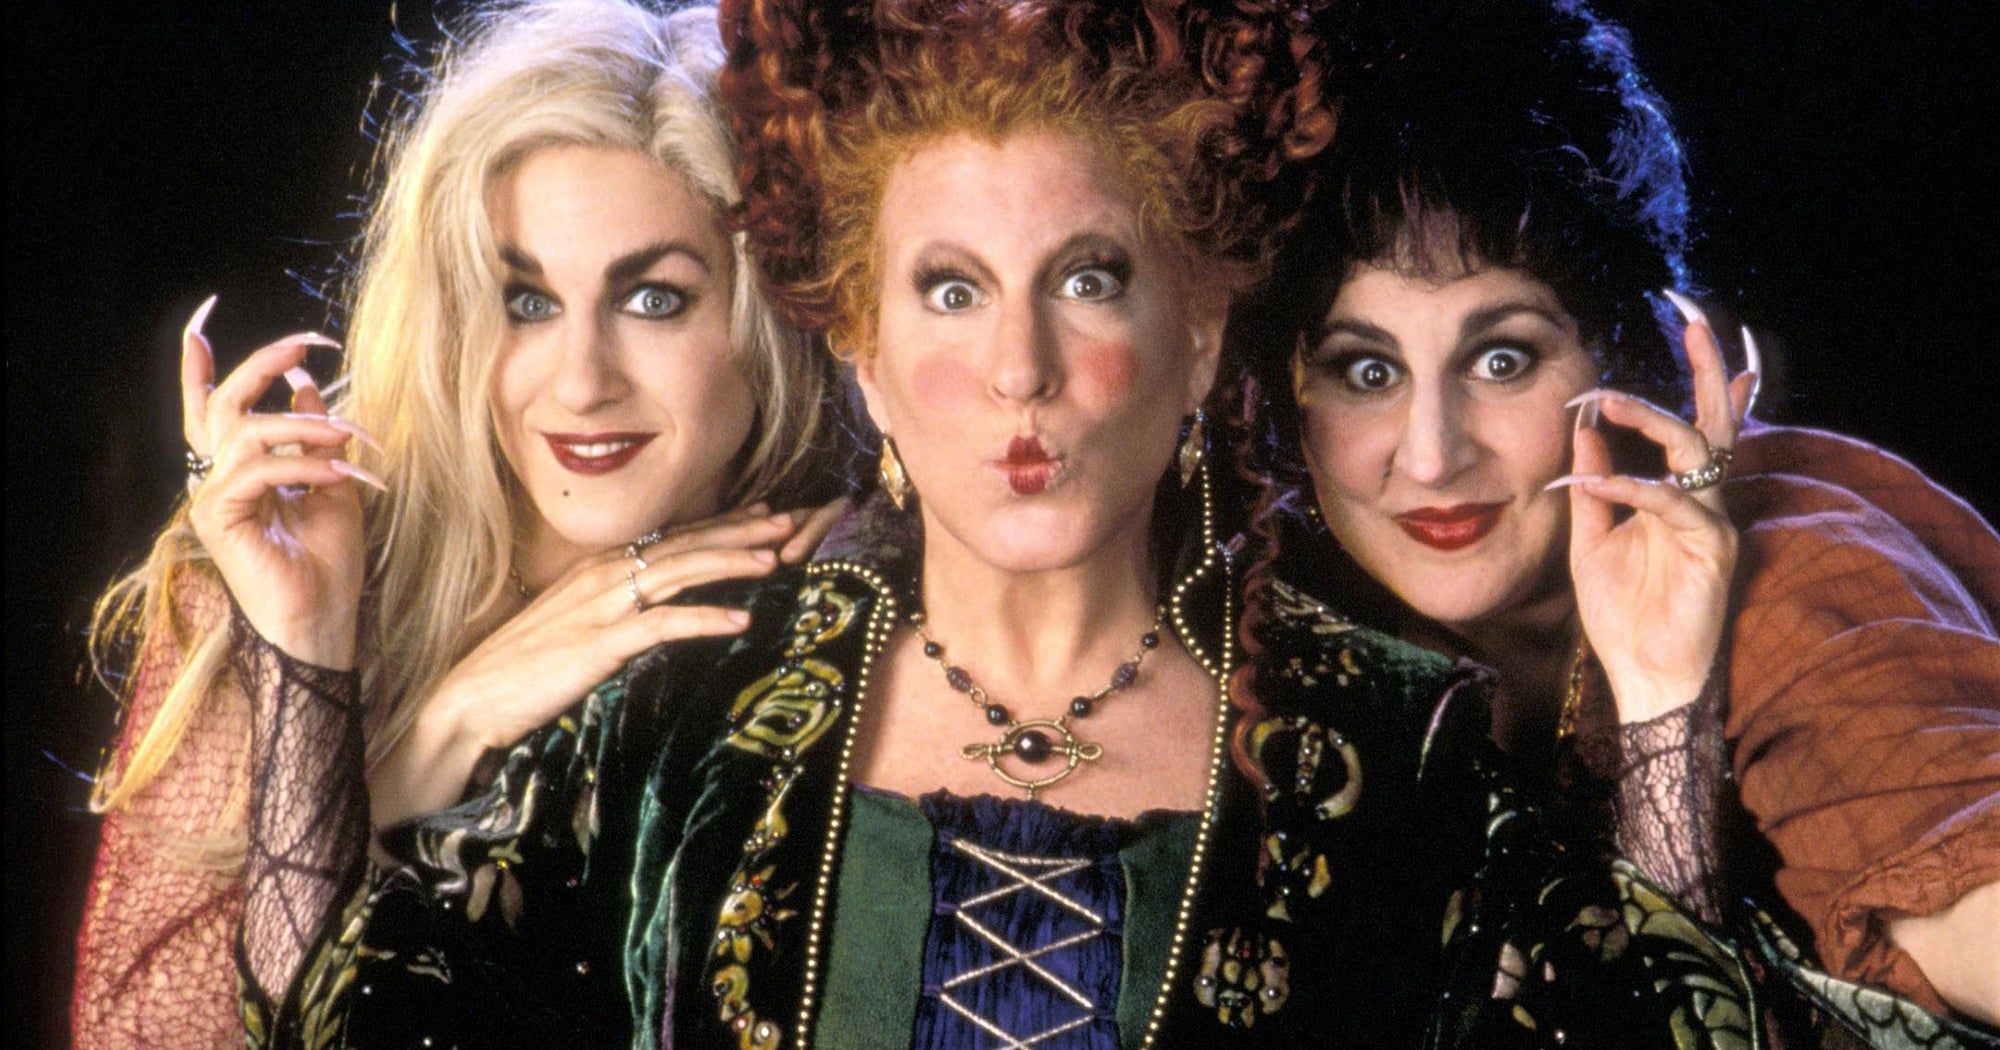 Where To Watch Hocus Pocus Movie: On TV & Stream Online